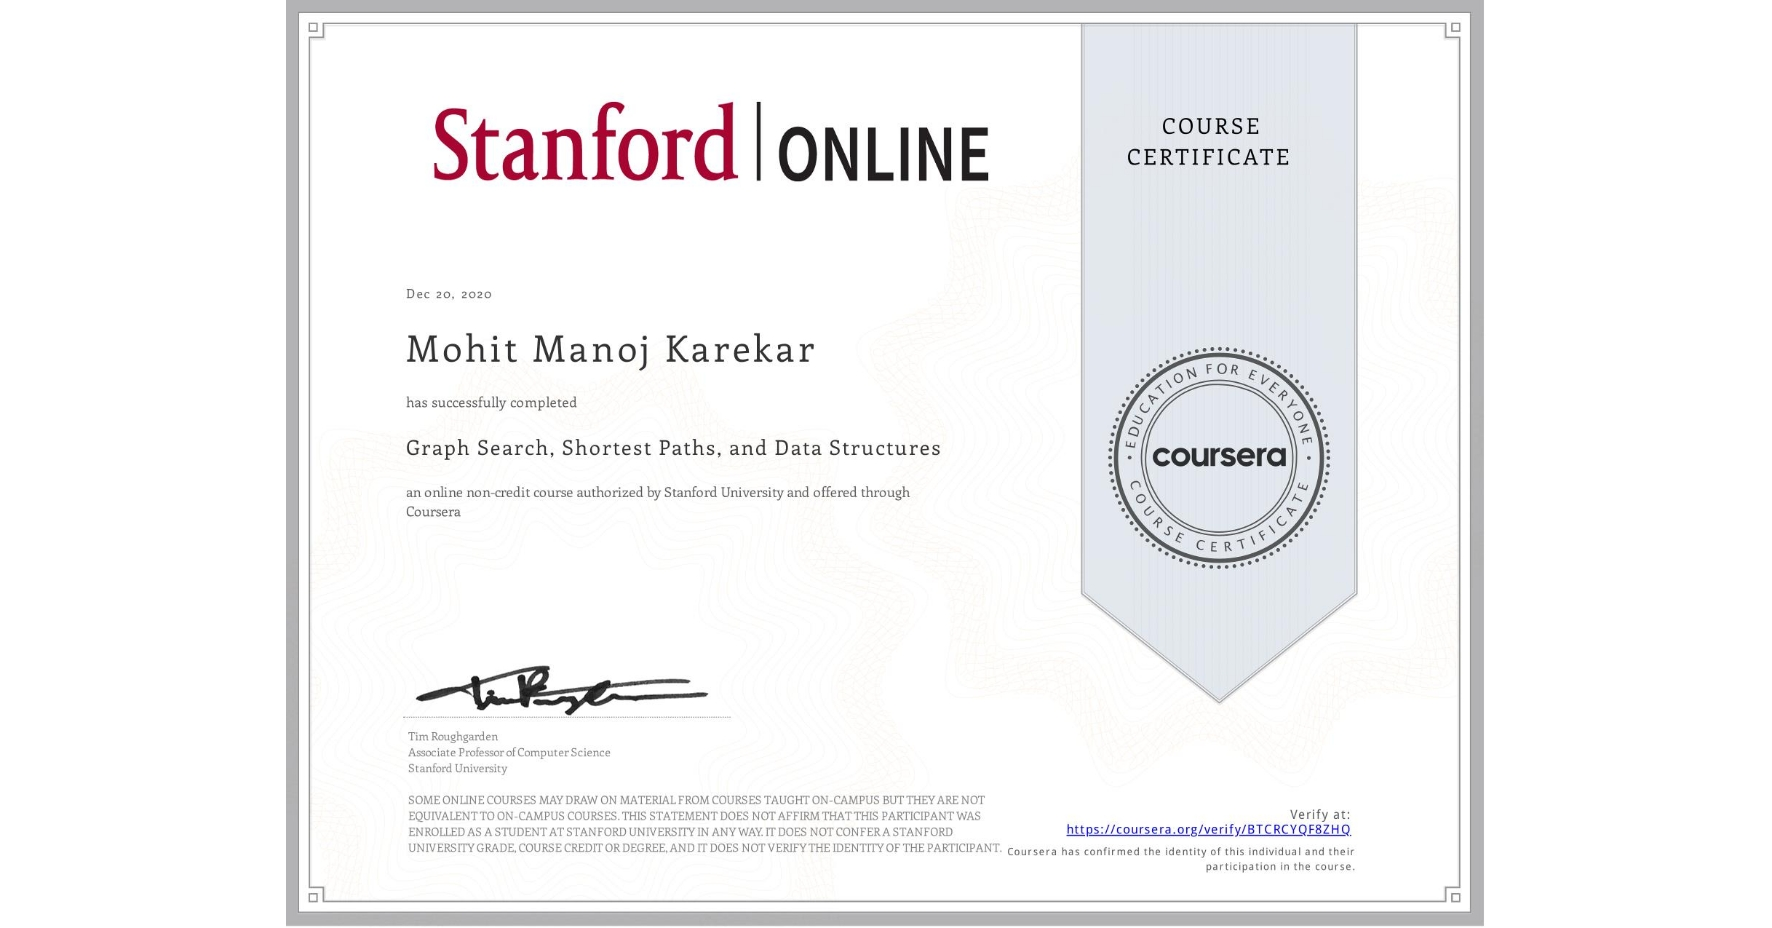 View certificate for Mohit Manoj Karekar, Graph Search, Shortest Paths, and Data Structures, an online non-credit course authorized by Stanford University and offered through Coursera